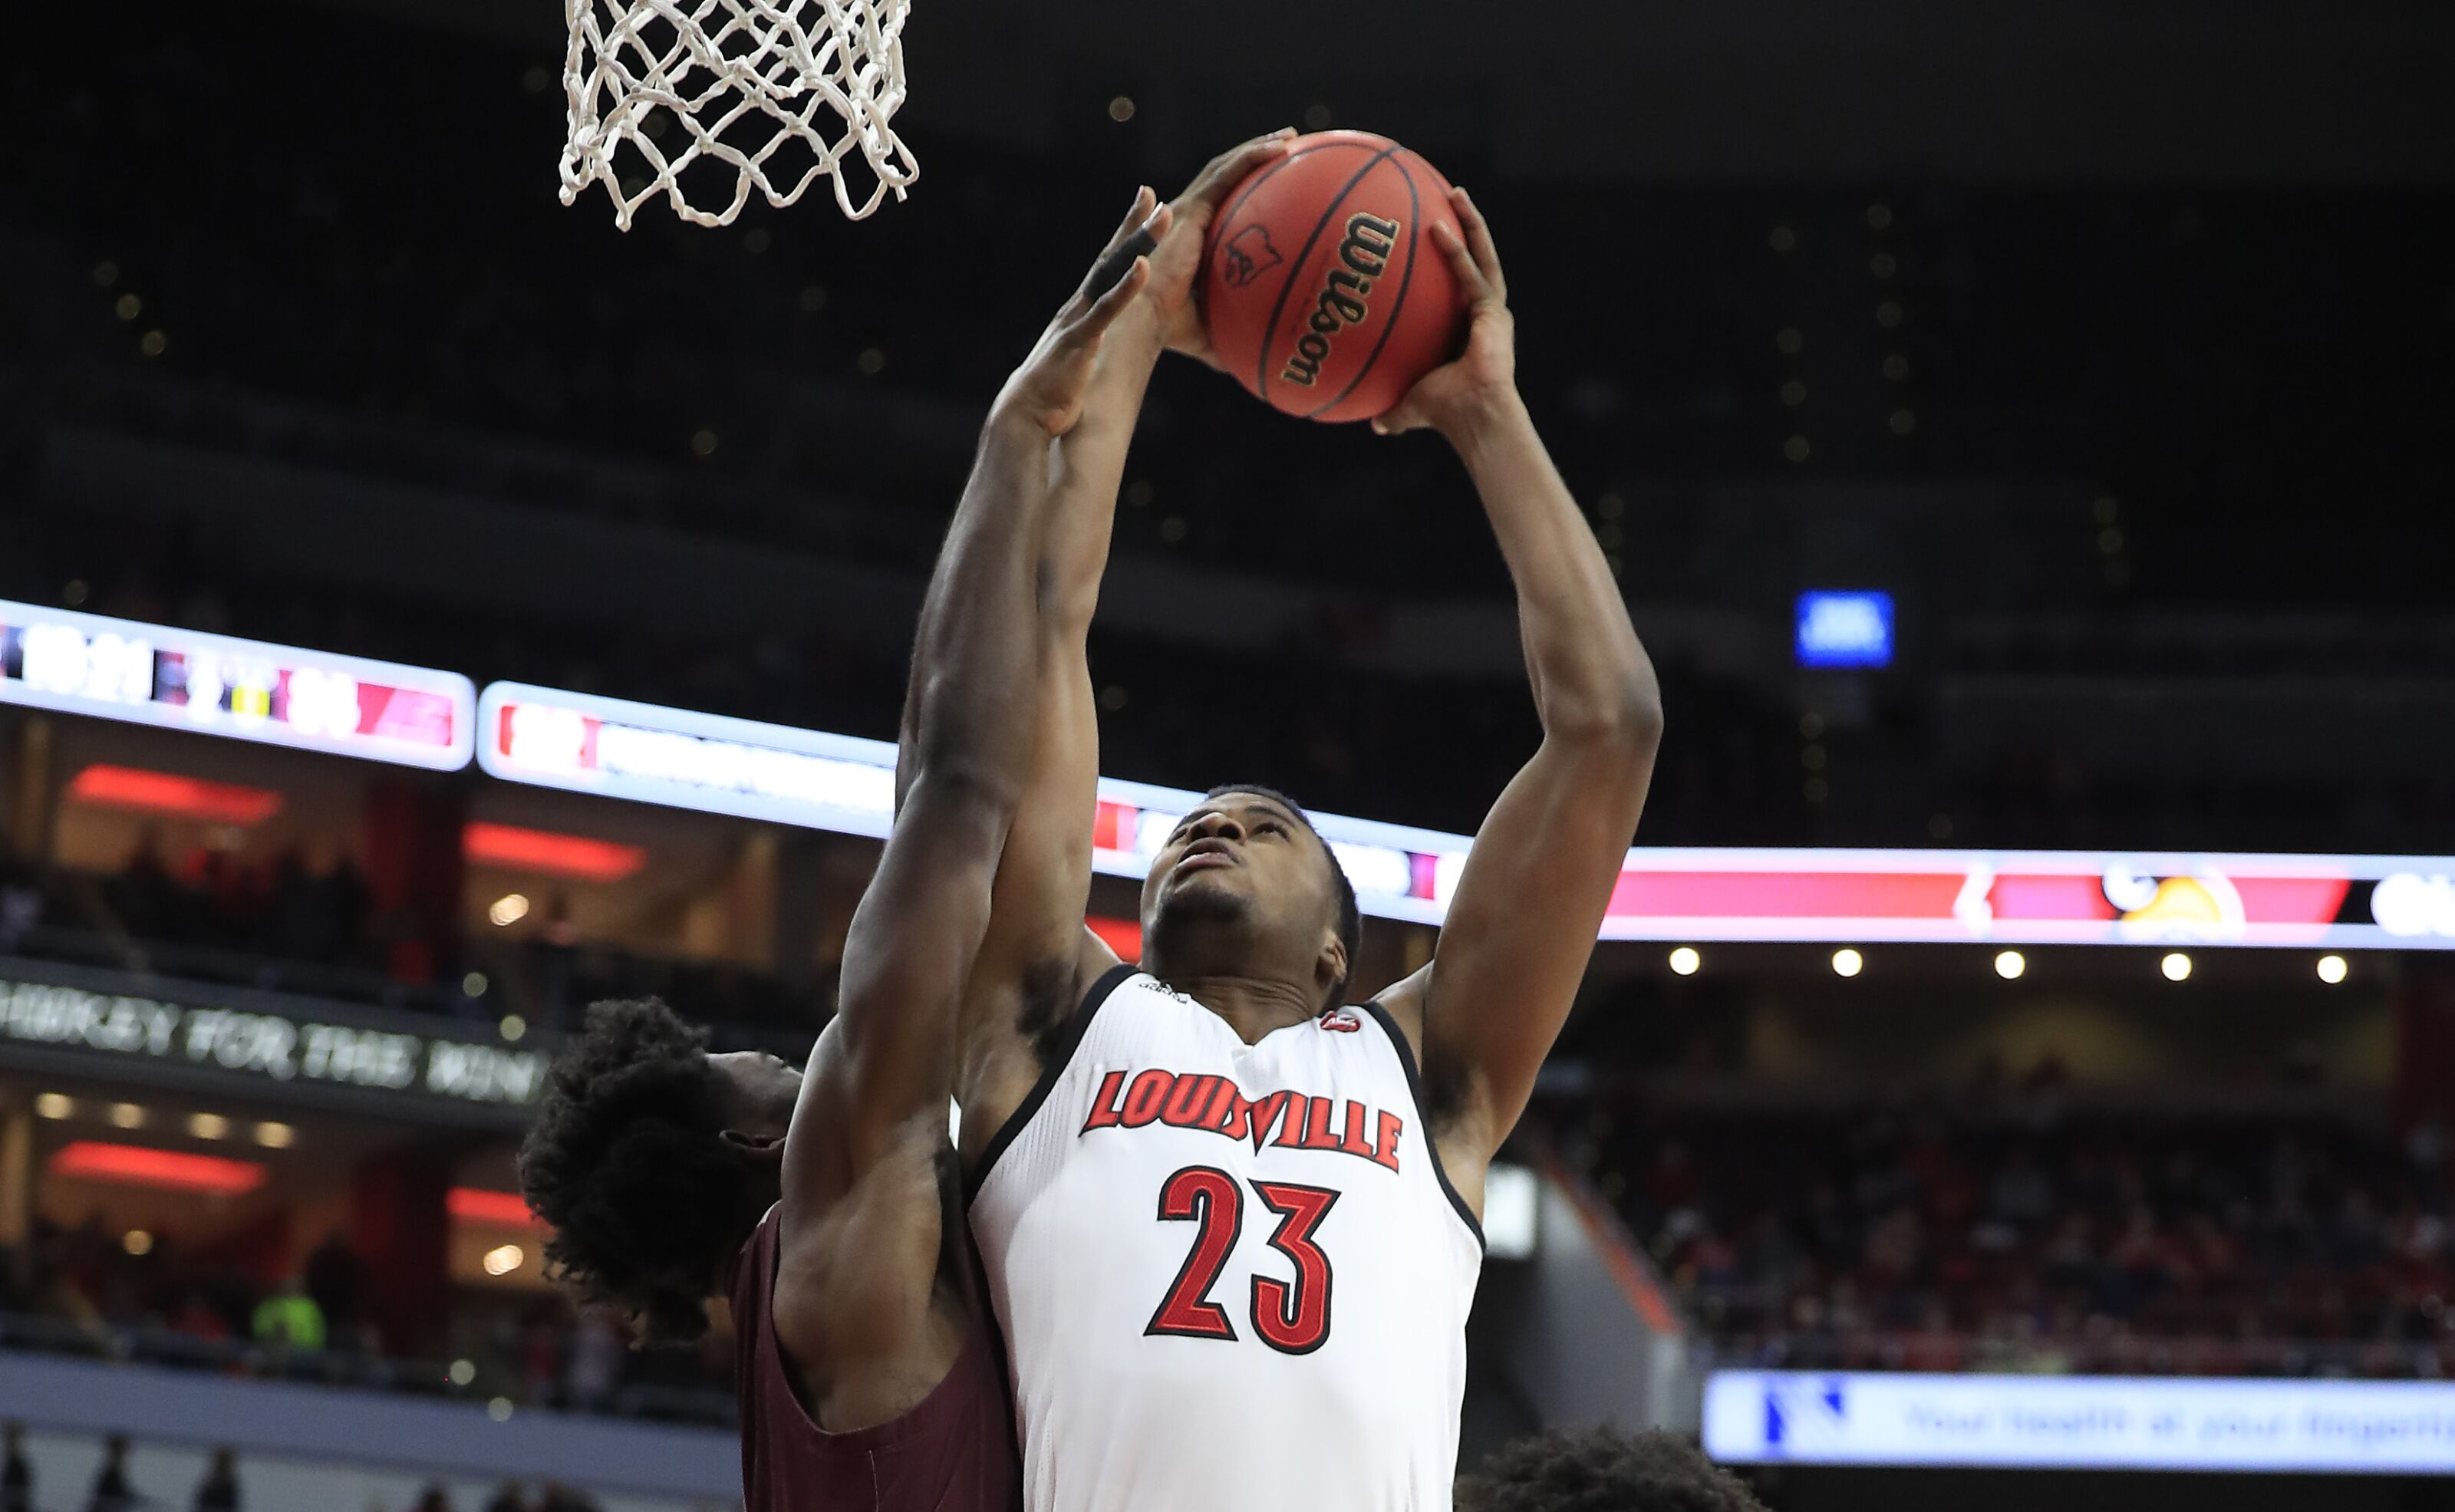 Louisville Basketball: 2019-20 keys to victory over Duke at Cameron